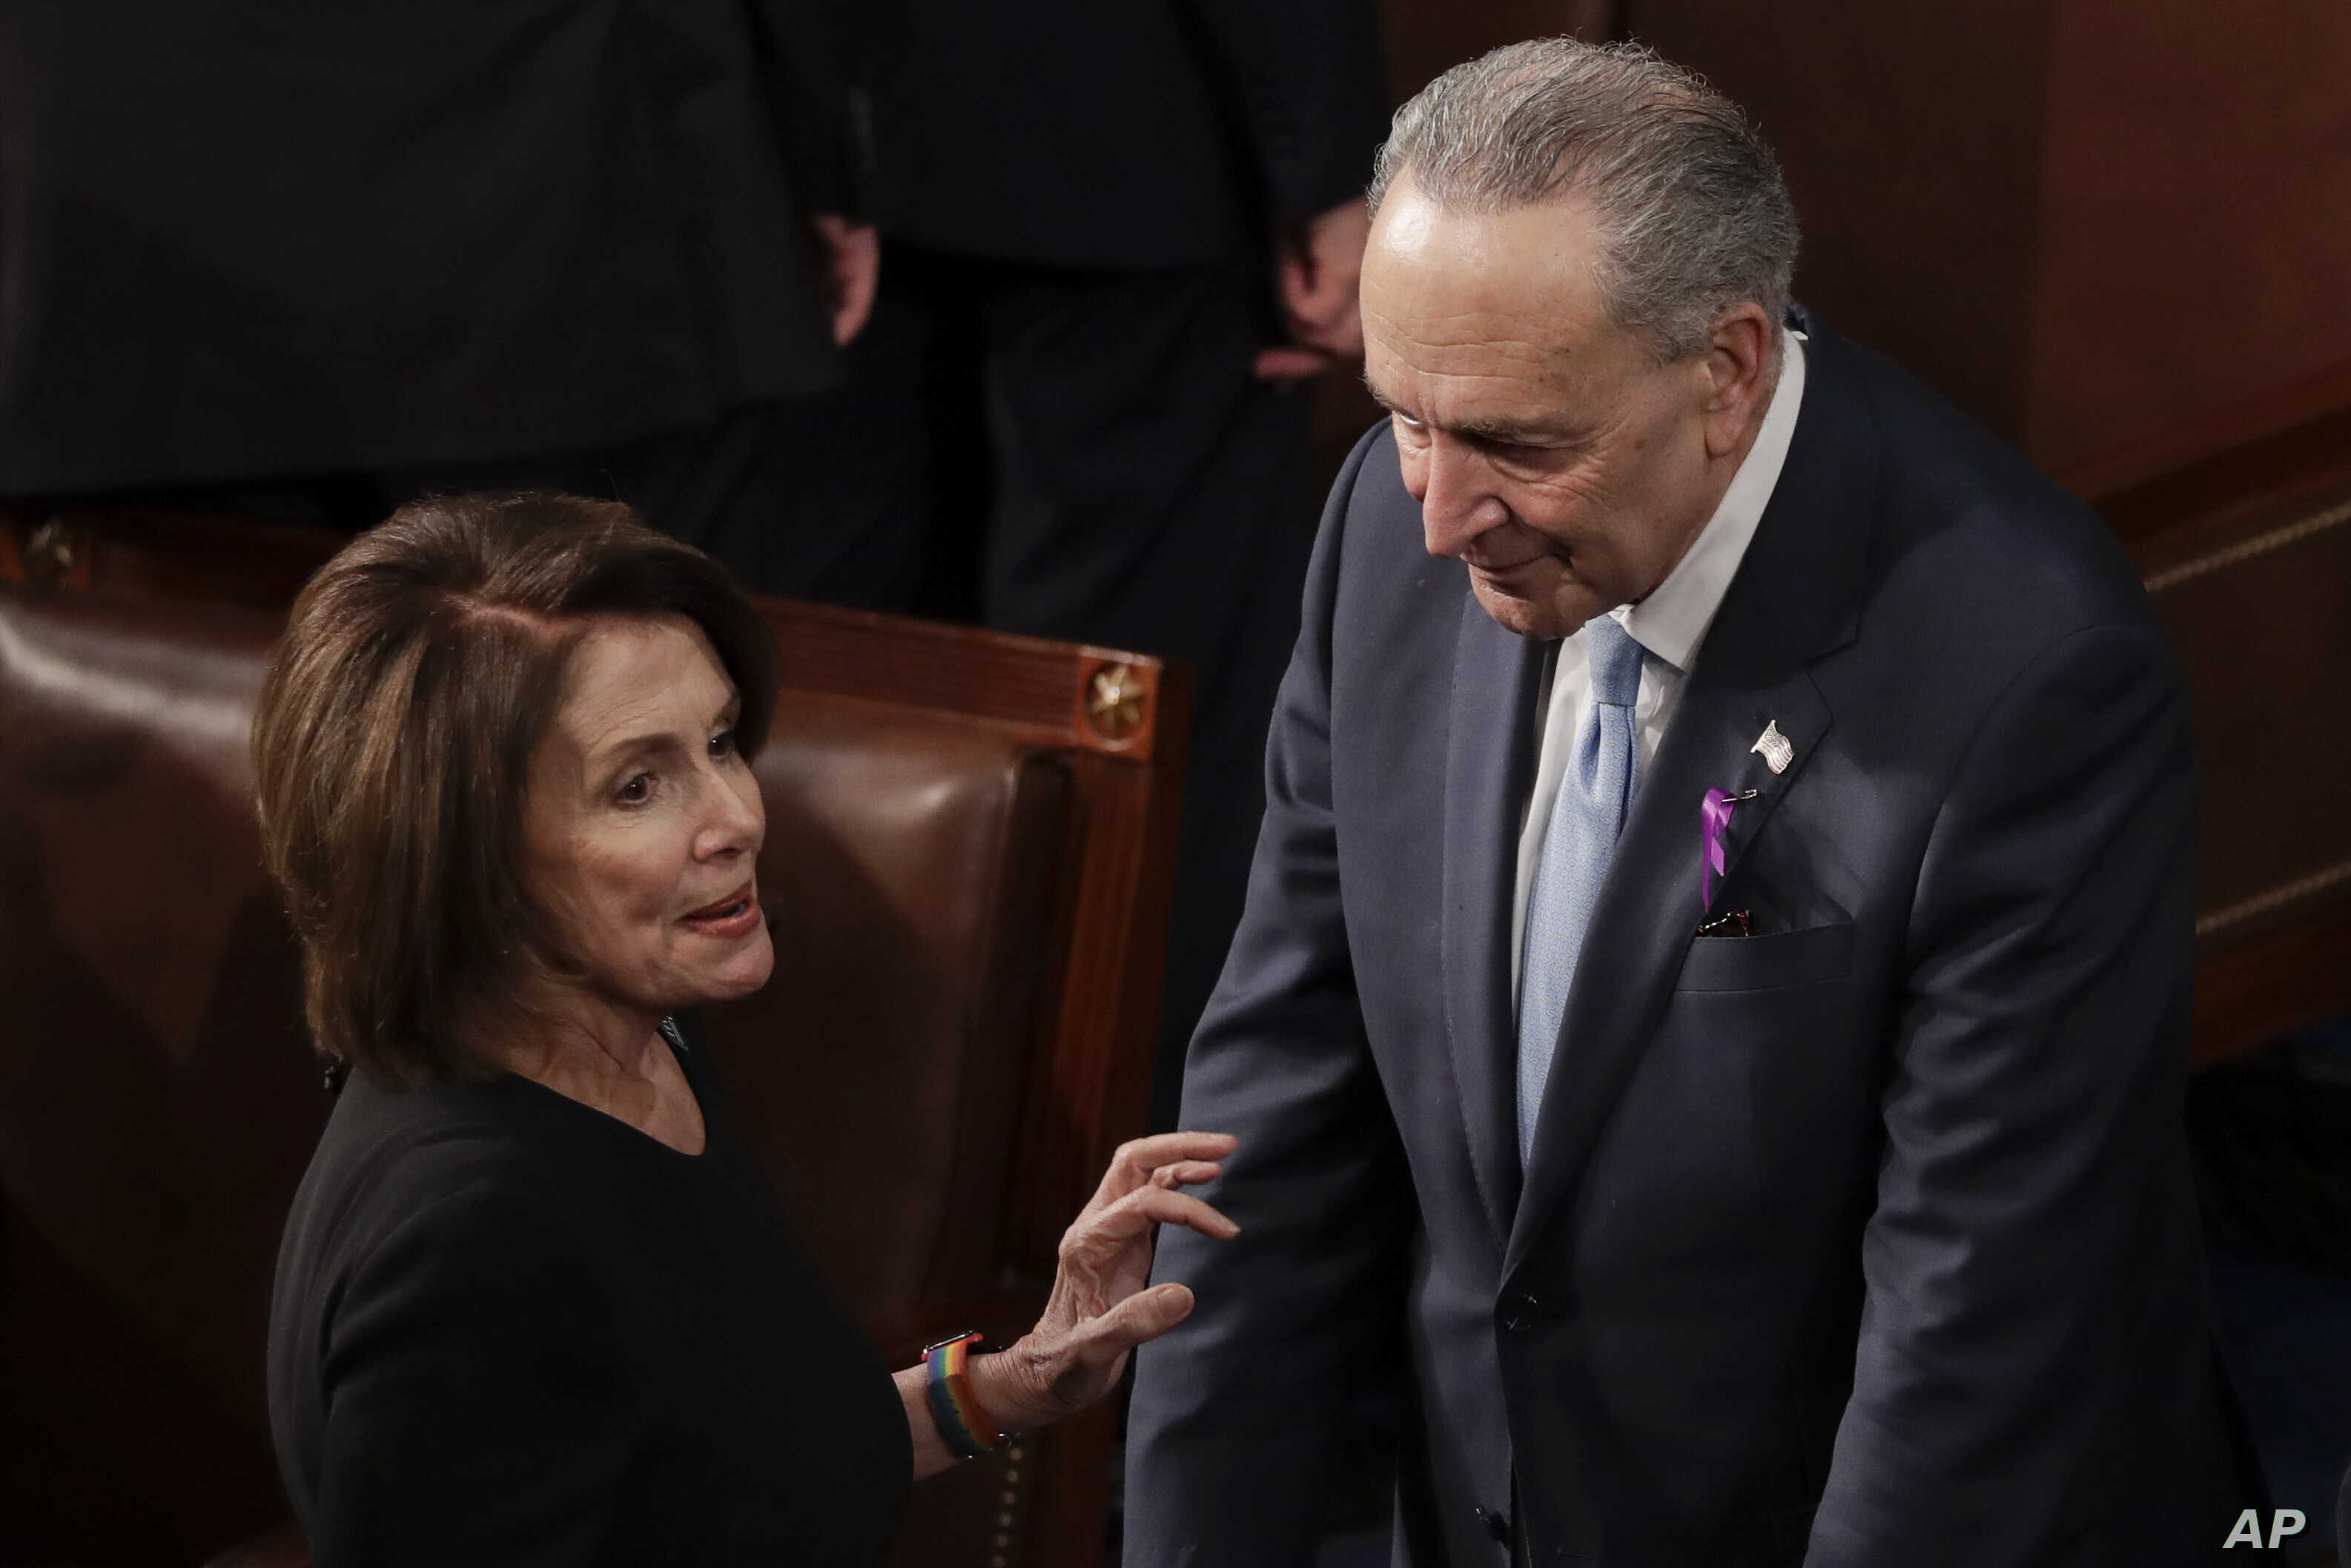 House Minority Leader Nancy Pelosi of California talks with Senate Minority Chuck Schumer of New York before the State of the Union address to a joint session of Congress on Capitol Hill in Washington, Jan. 30, 2018.